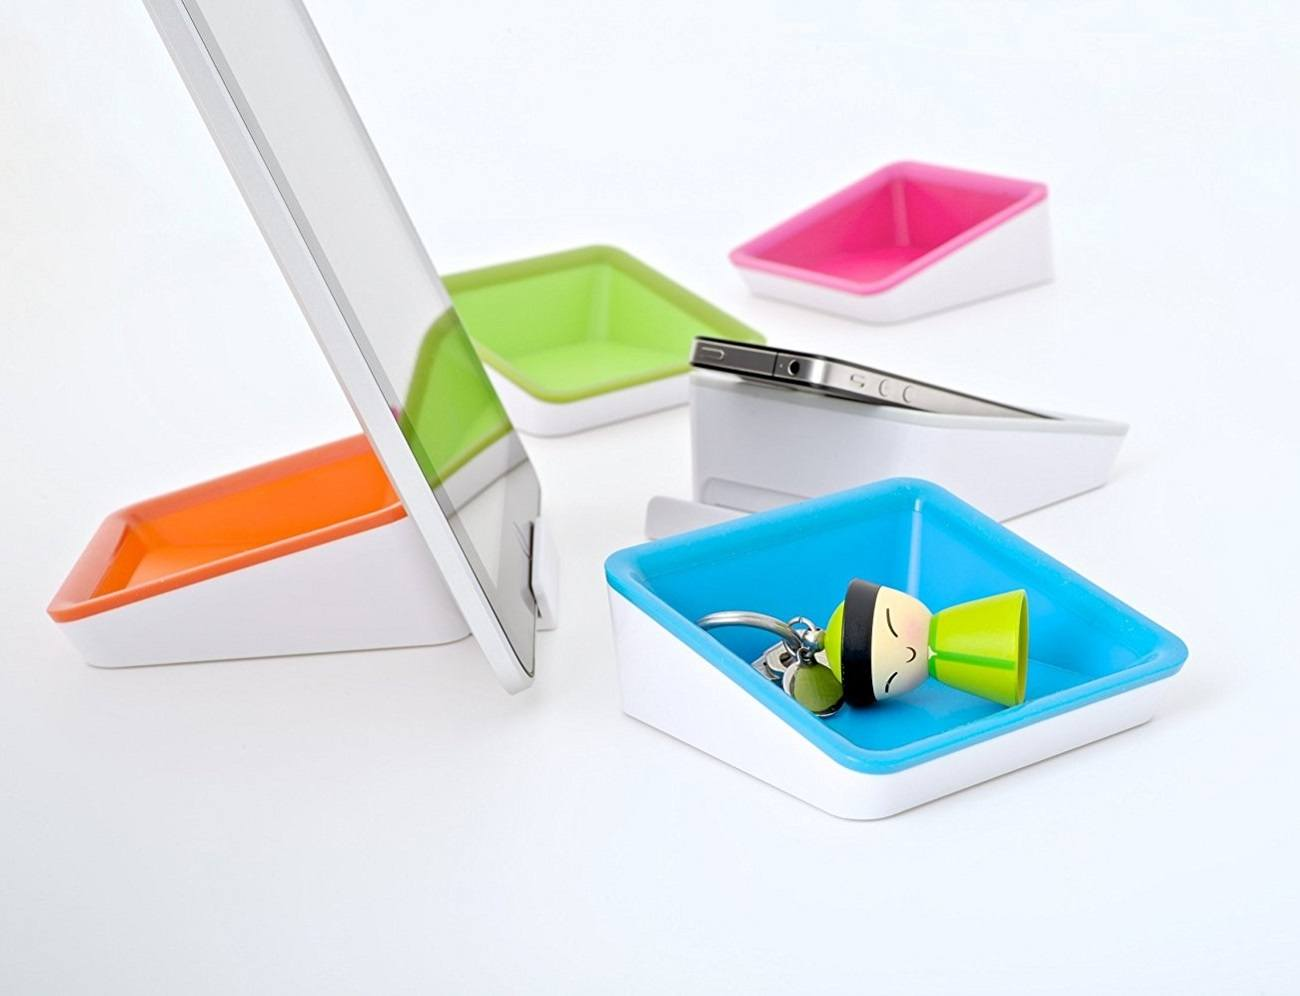 Nest Stand For iPad By Bluelounge